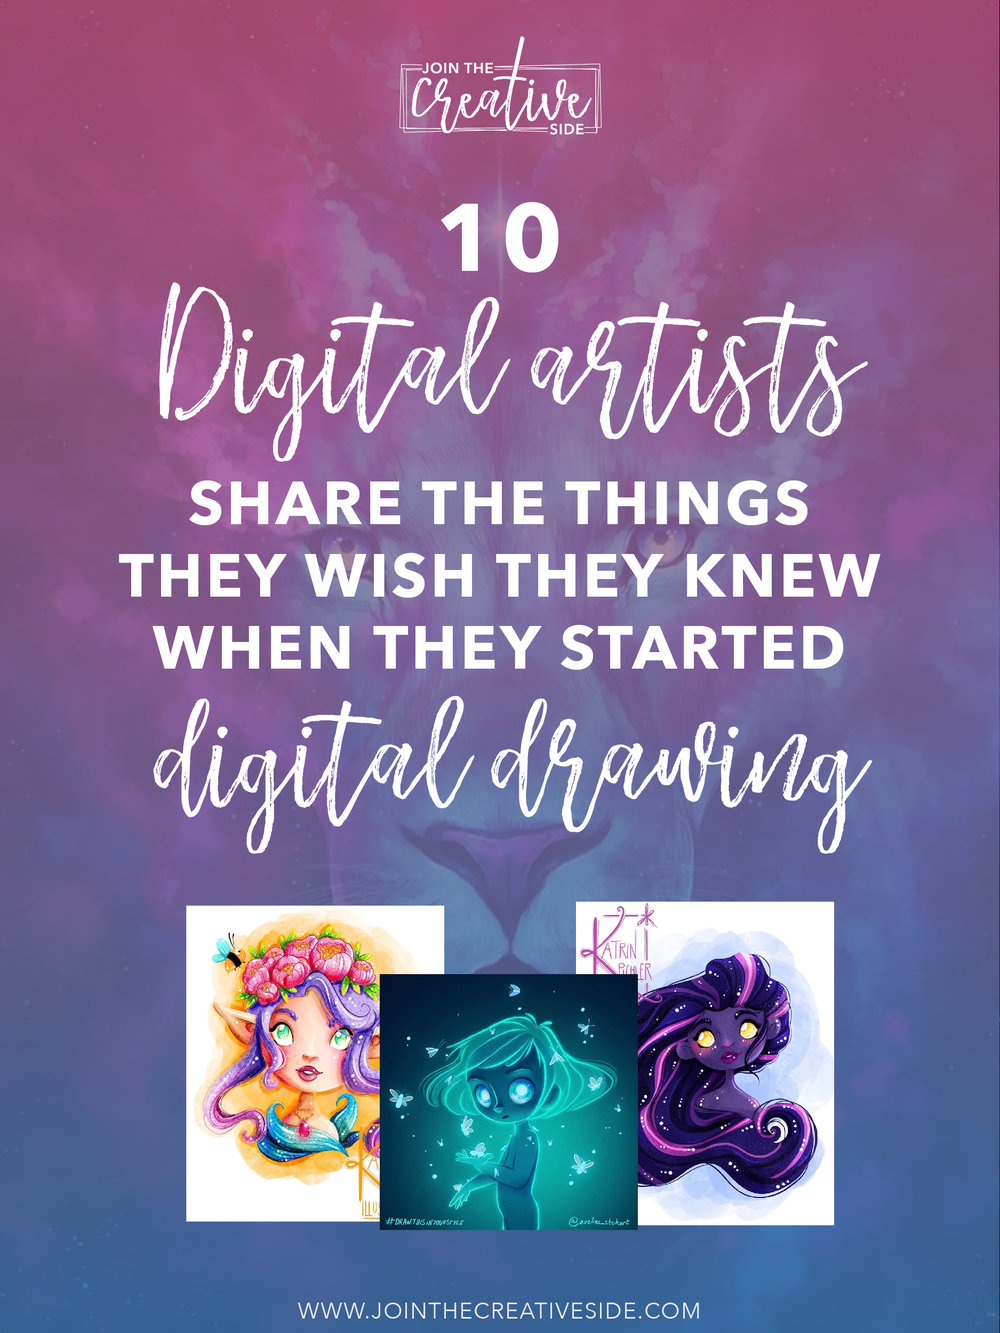 Join The Creative Side   10 Digital artists share mistakes they wish they knew earlier when they started digital painting   In this blog post, I have teamed up with 9 other digital artists to share the things we wish we knew earlier about digital painting. #Art #artist #drawing #painting #digitaldrawing #digitalpainting